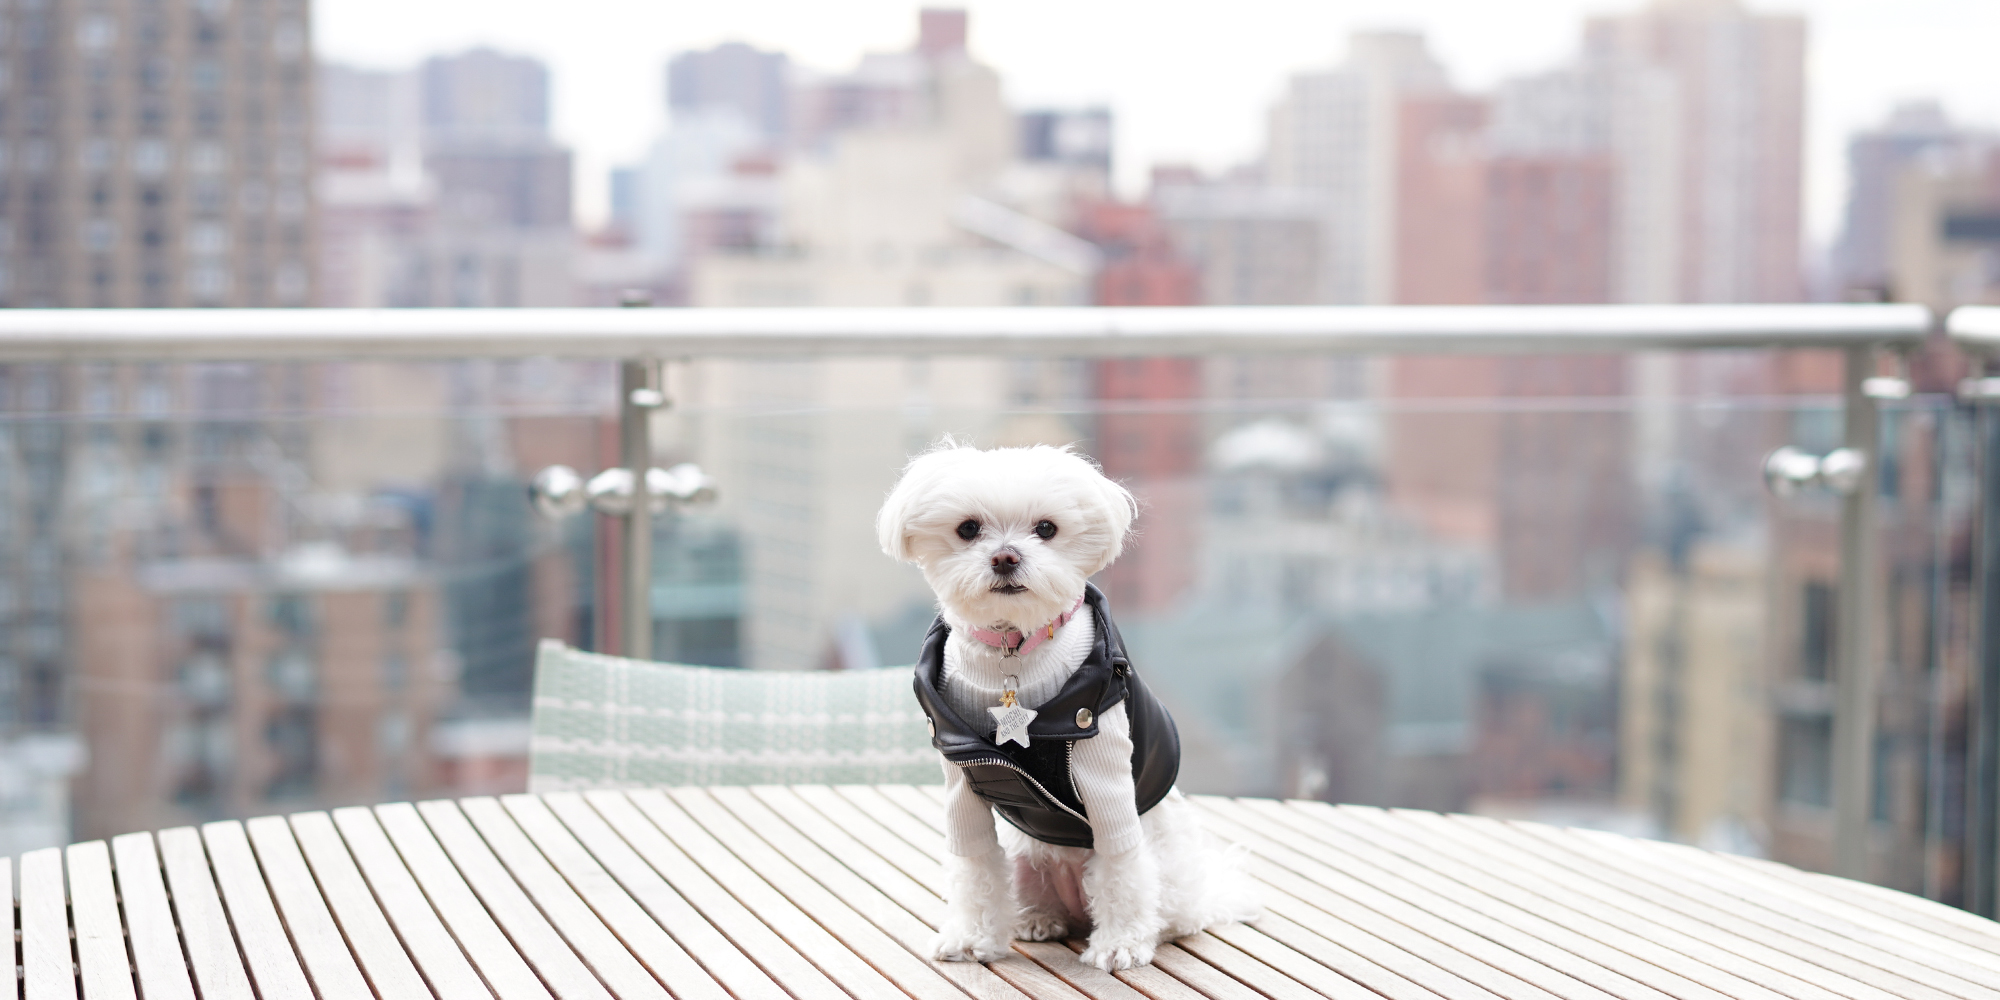 Mochi and the City - Mondrian Park Avenue skyline